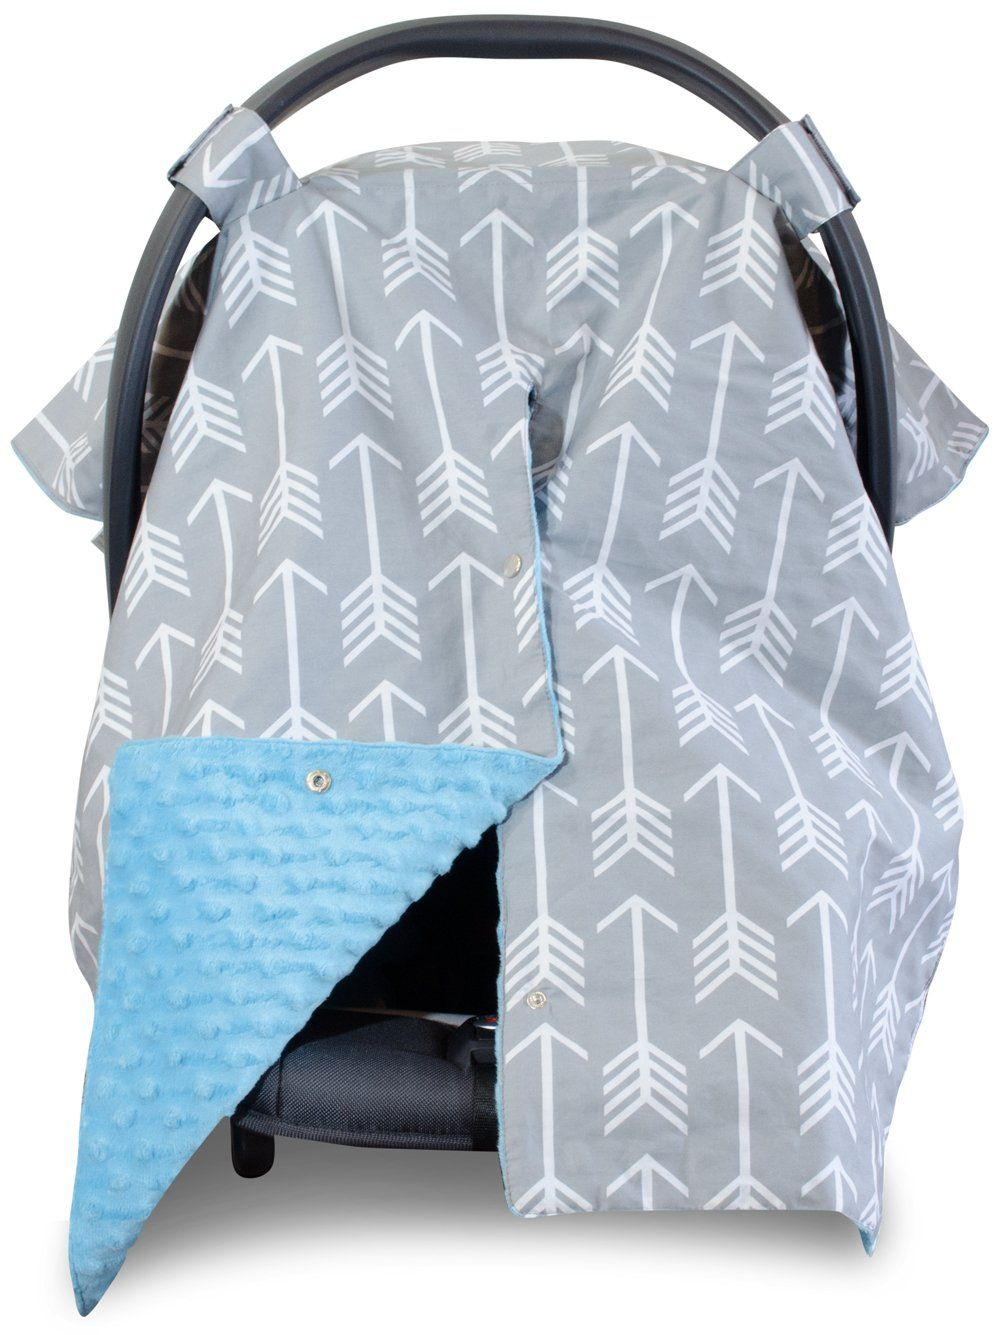 Amazon Premium Carseat Canopy Cover With Peekaboo Opening Large Arrow Print Grey Dot Minky